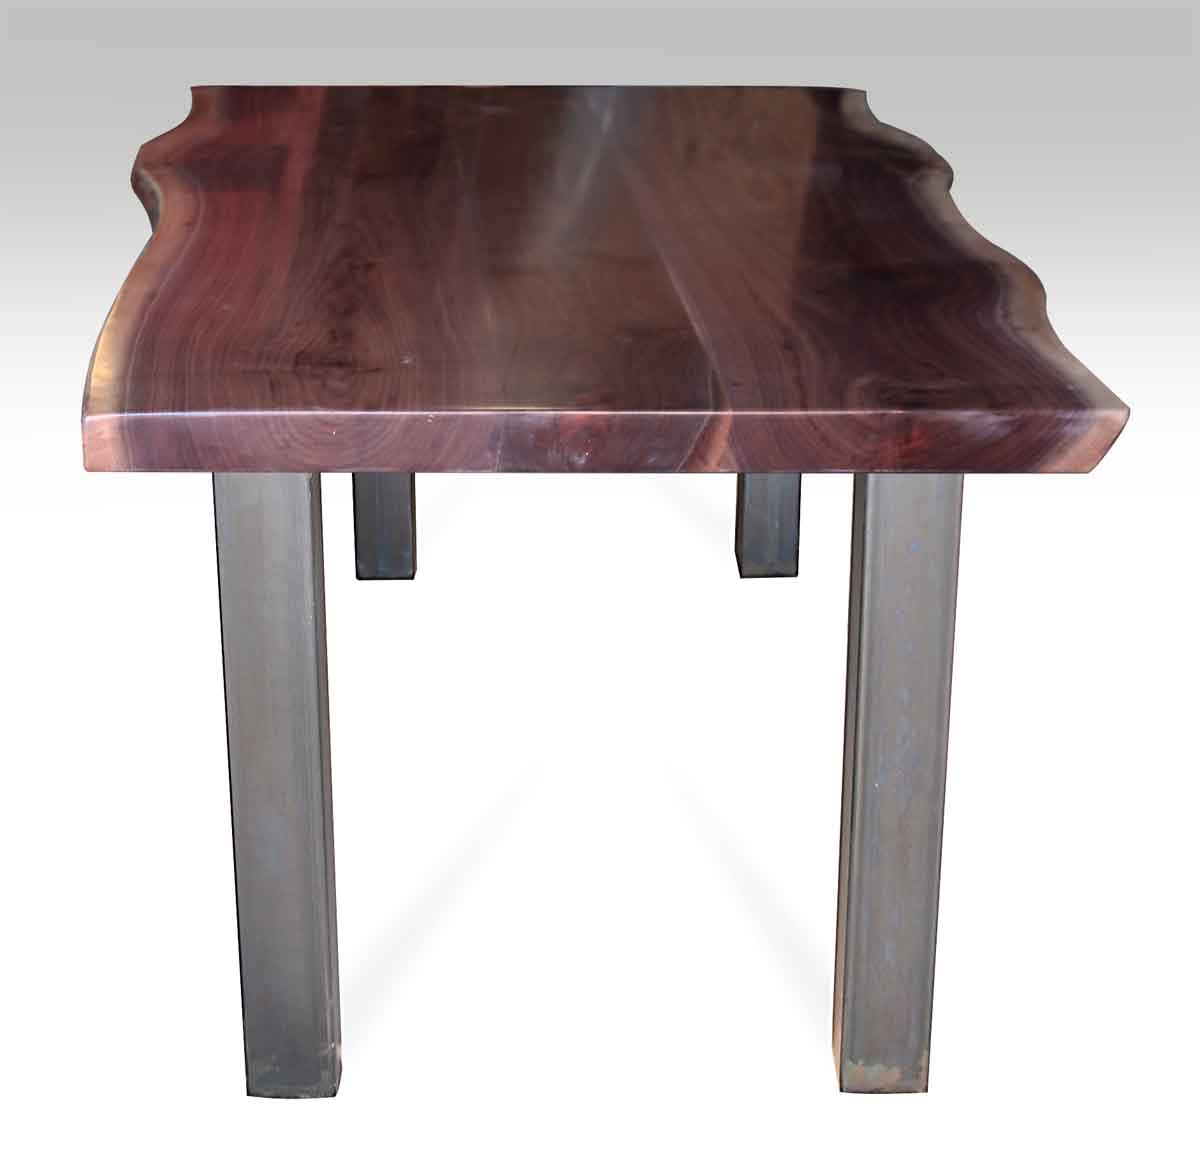 Live Edge Walnut Table Top with Square Metal Legs | Olde ...